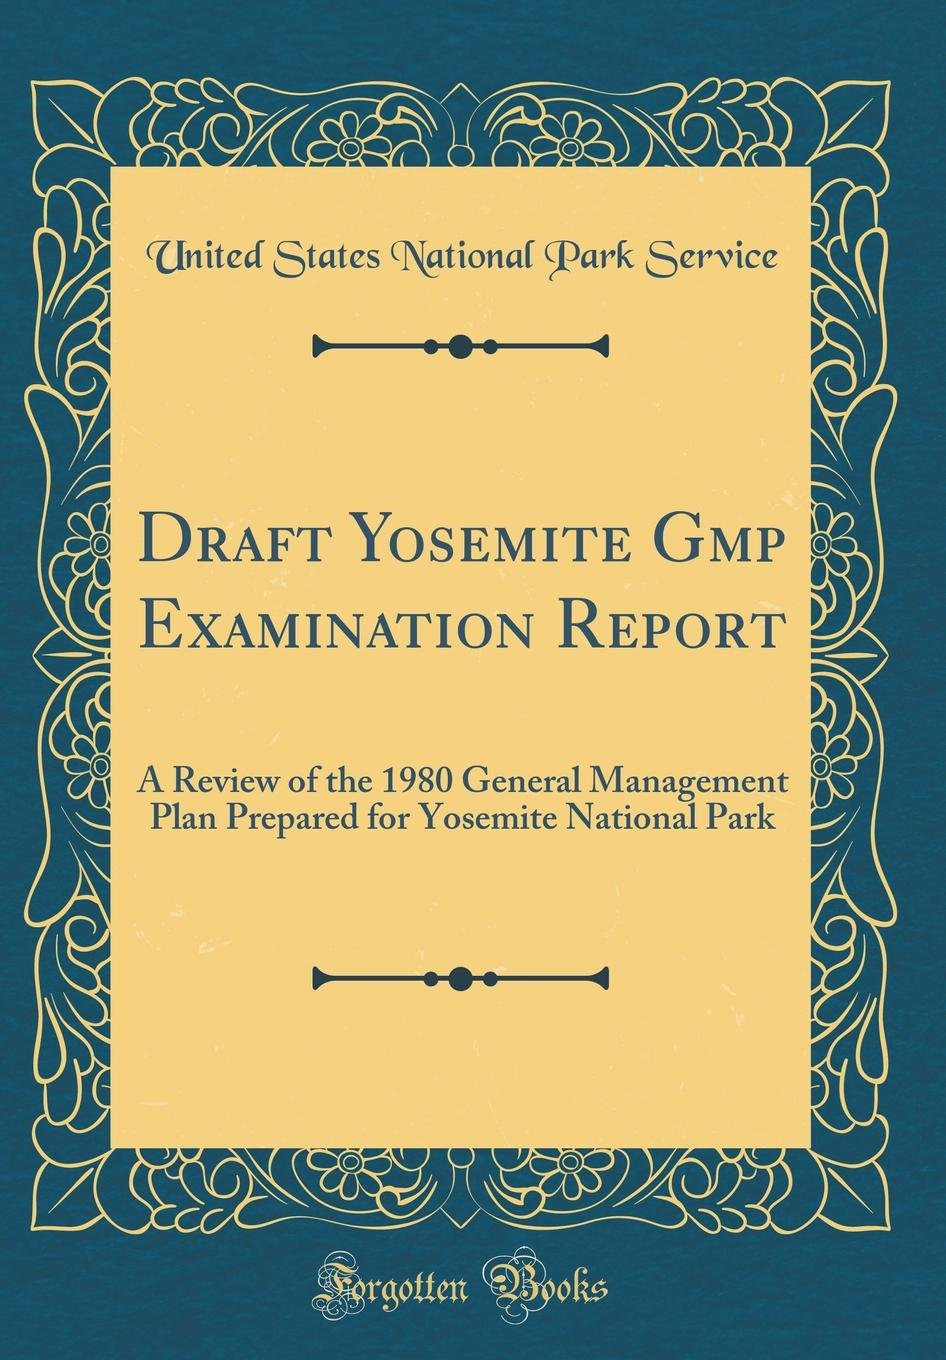 Download Draft Yosemite GMP Examination Report: A Review of the 1980 General Management Plan Prepared for Yosemite National Park (Classic Reprint) pdf